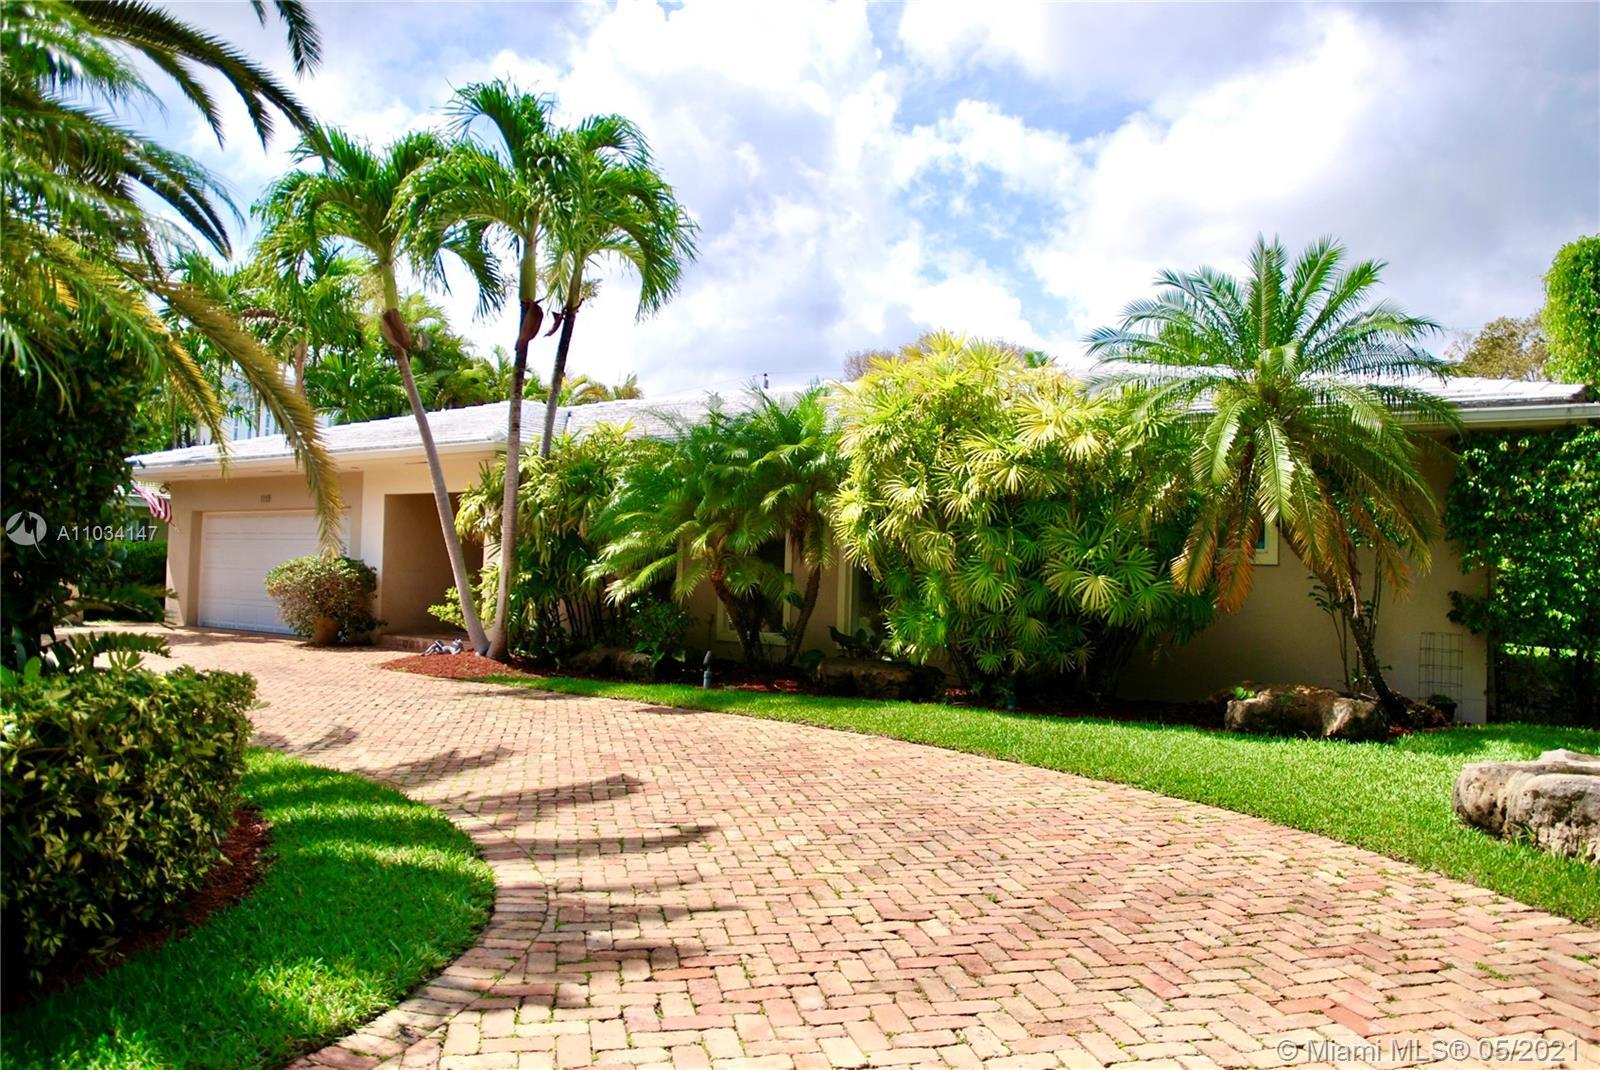 Your New Home in beautiful Coral Gables Awaits you! This bright, open and spacious floor plan boasts